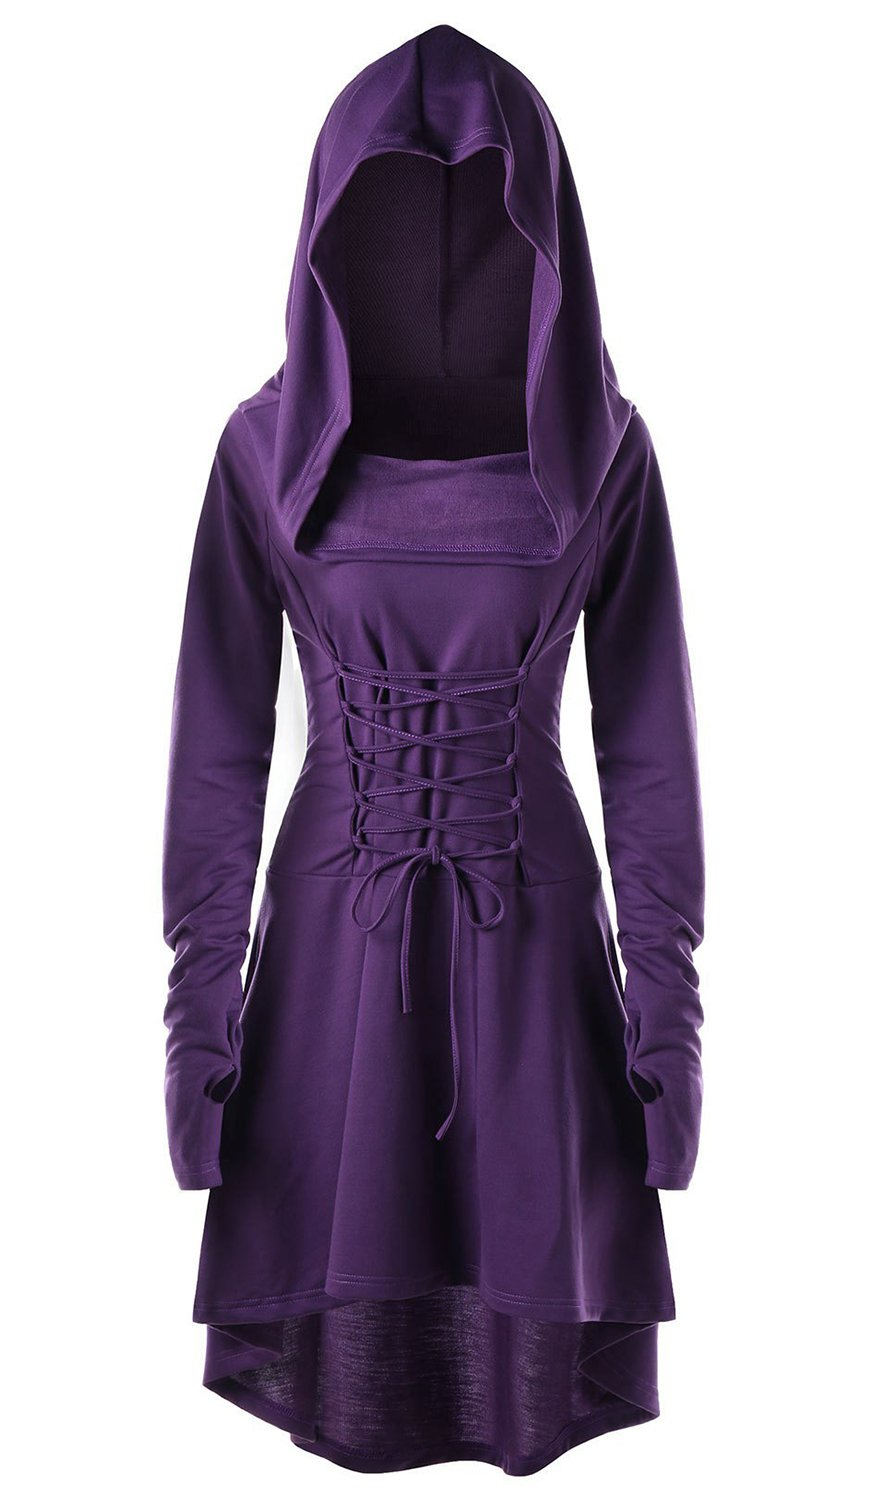 EastLife Womens Hooded Robe Lace up Vintage Pullover High Low Long Hoodie Dress